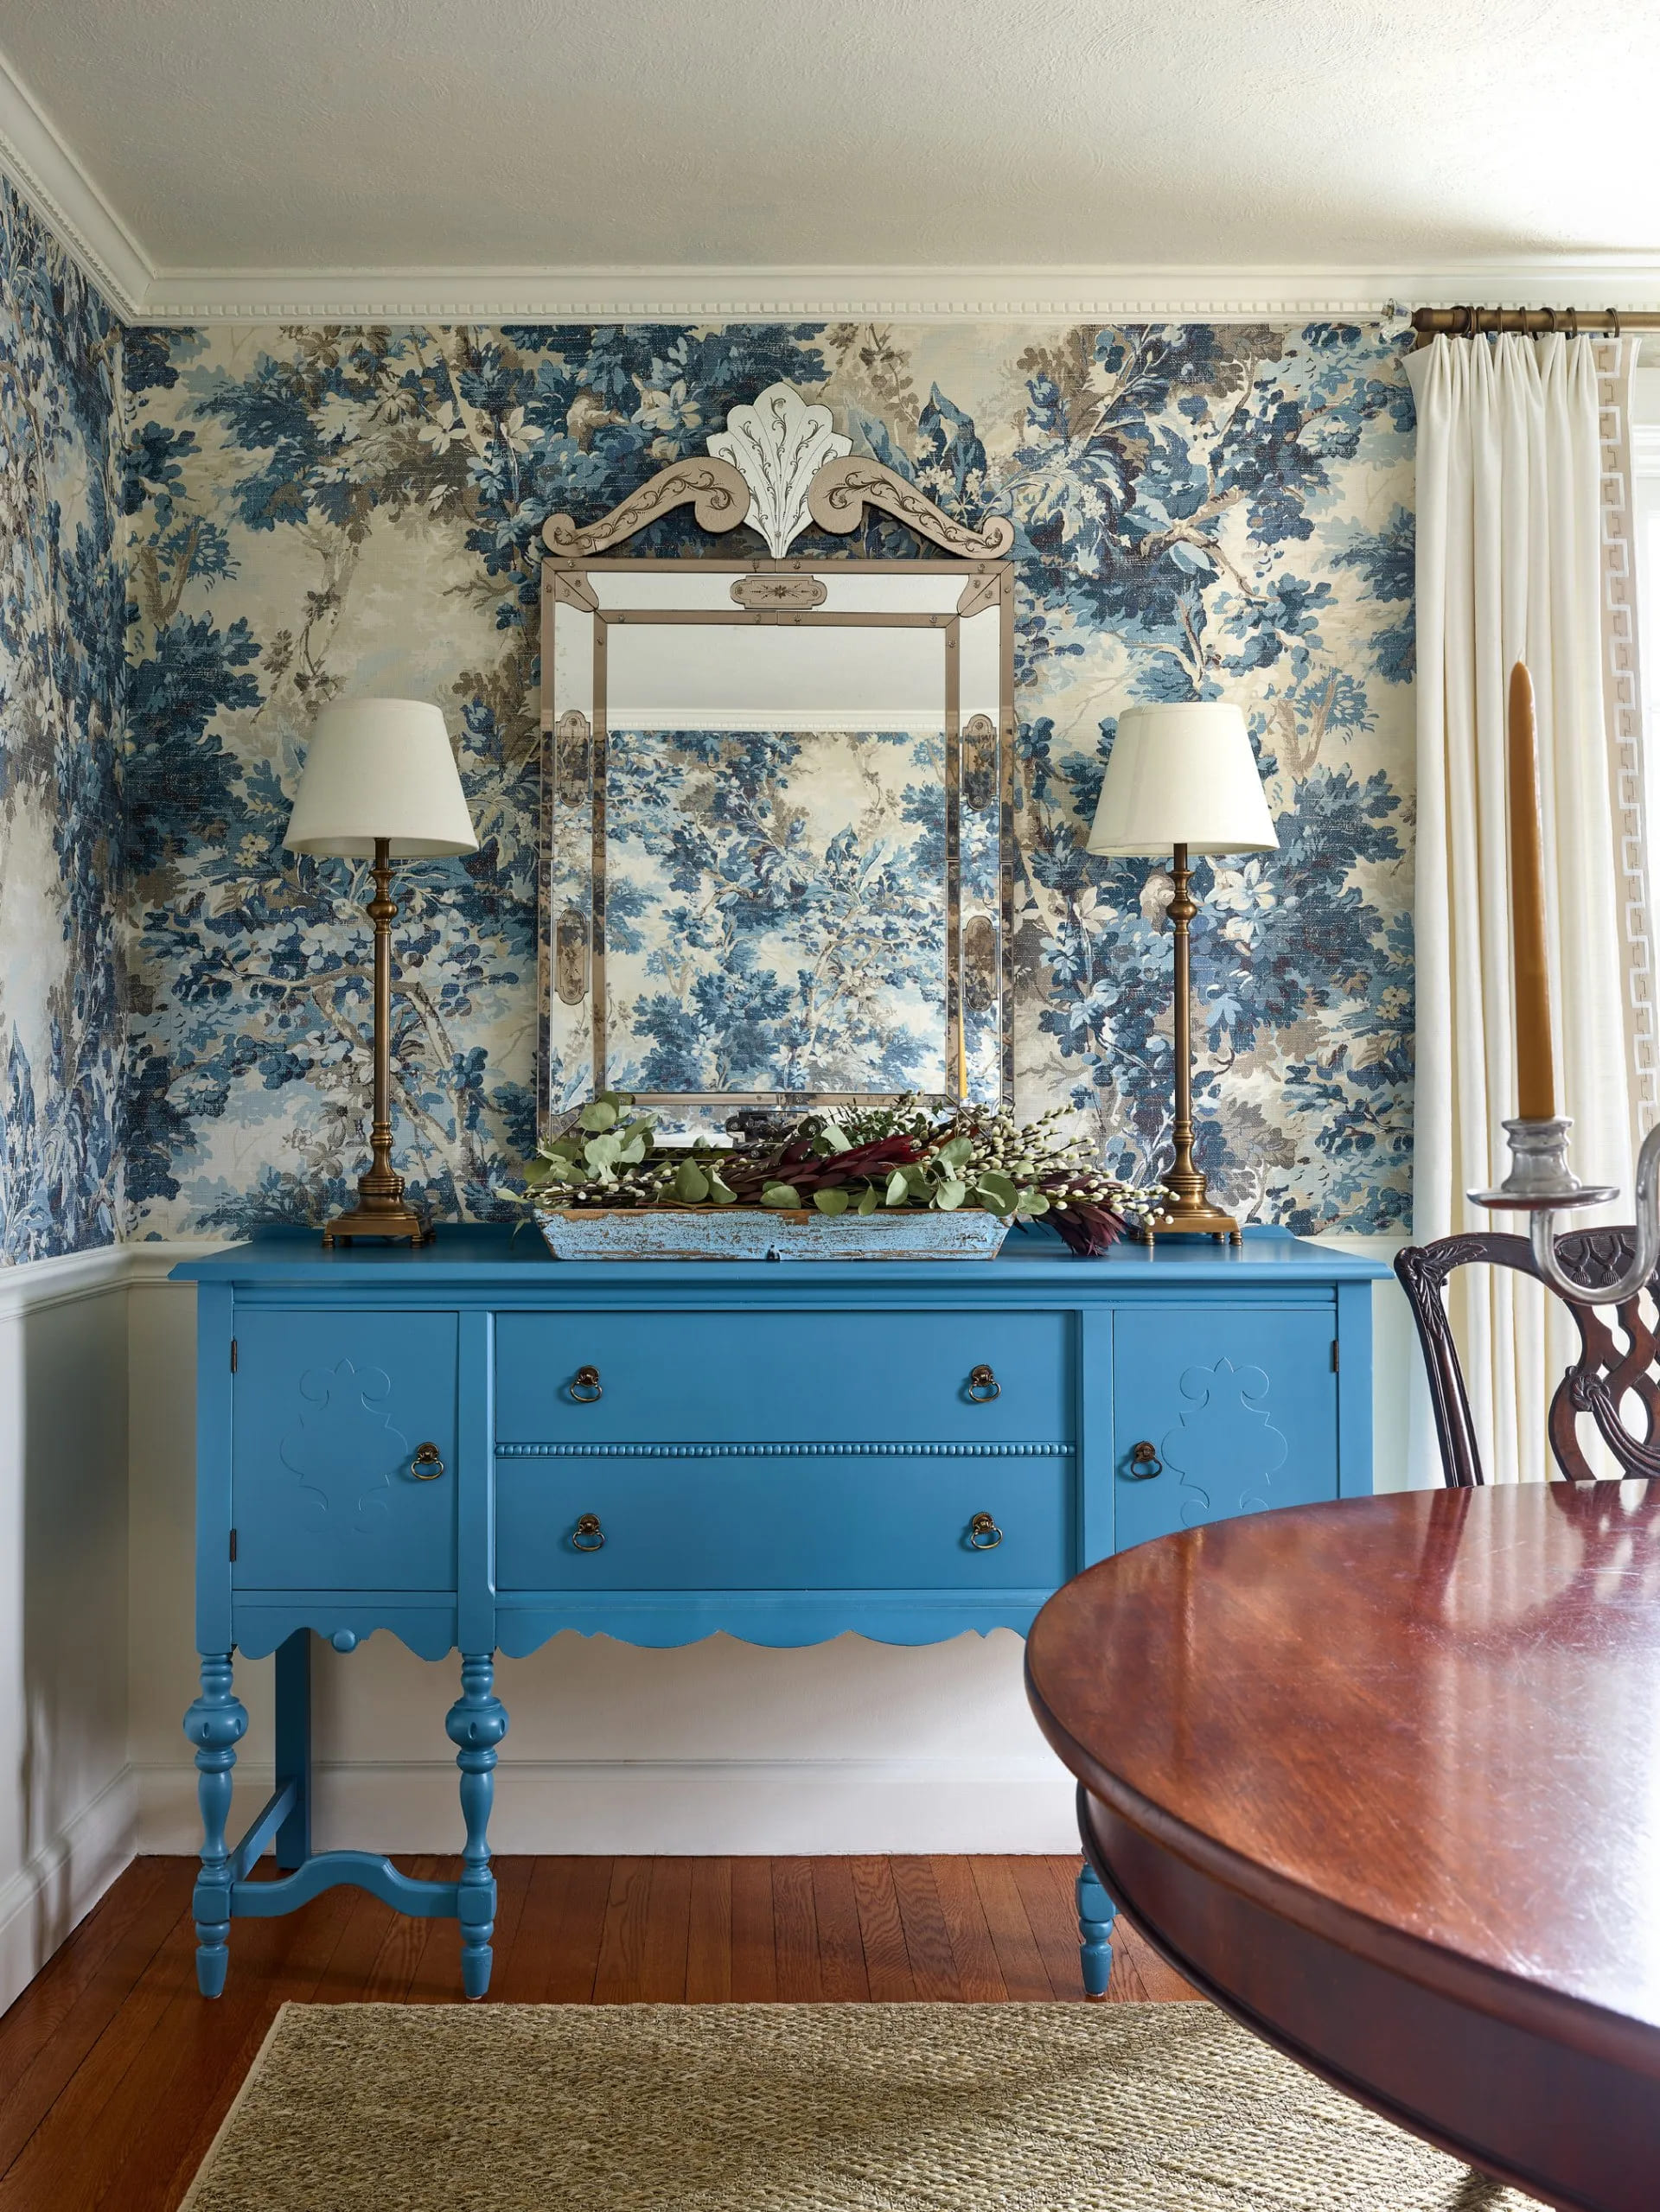 How Wallpaper Can Dramatically Change a Space